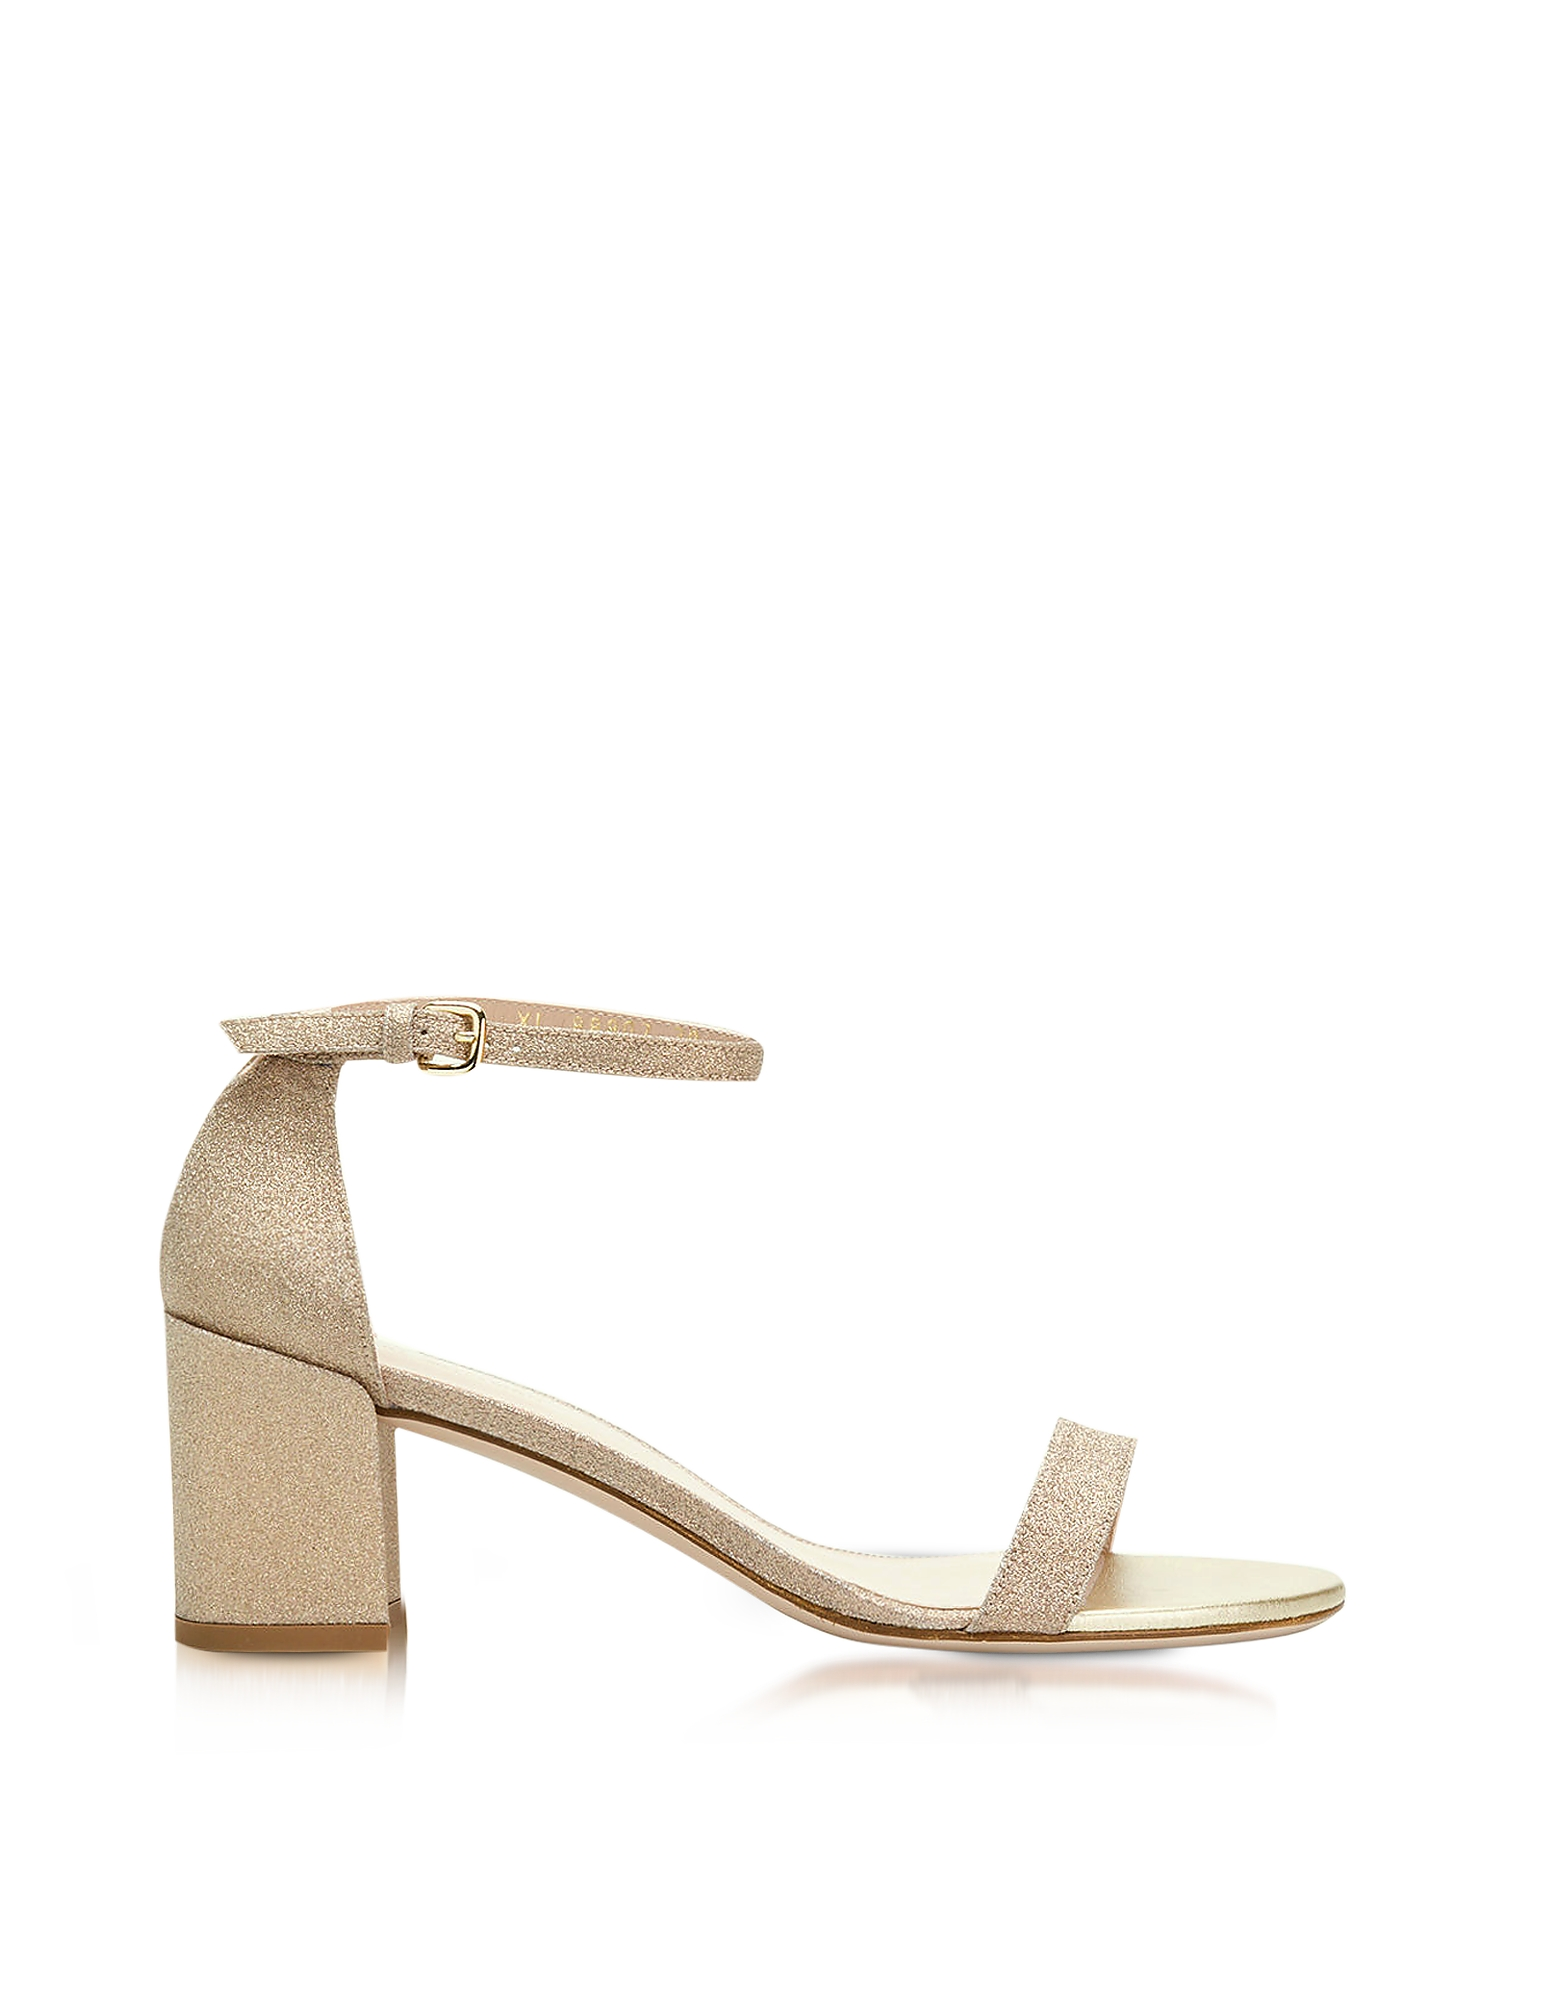 Stuart Weitzman Shoes, Simple Gold Glitter Mid Heel Sandals